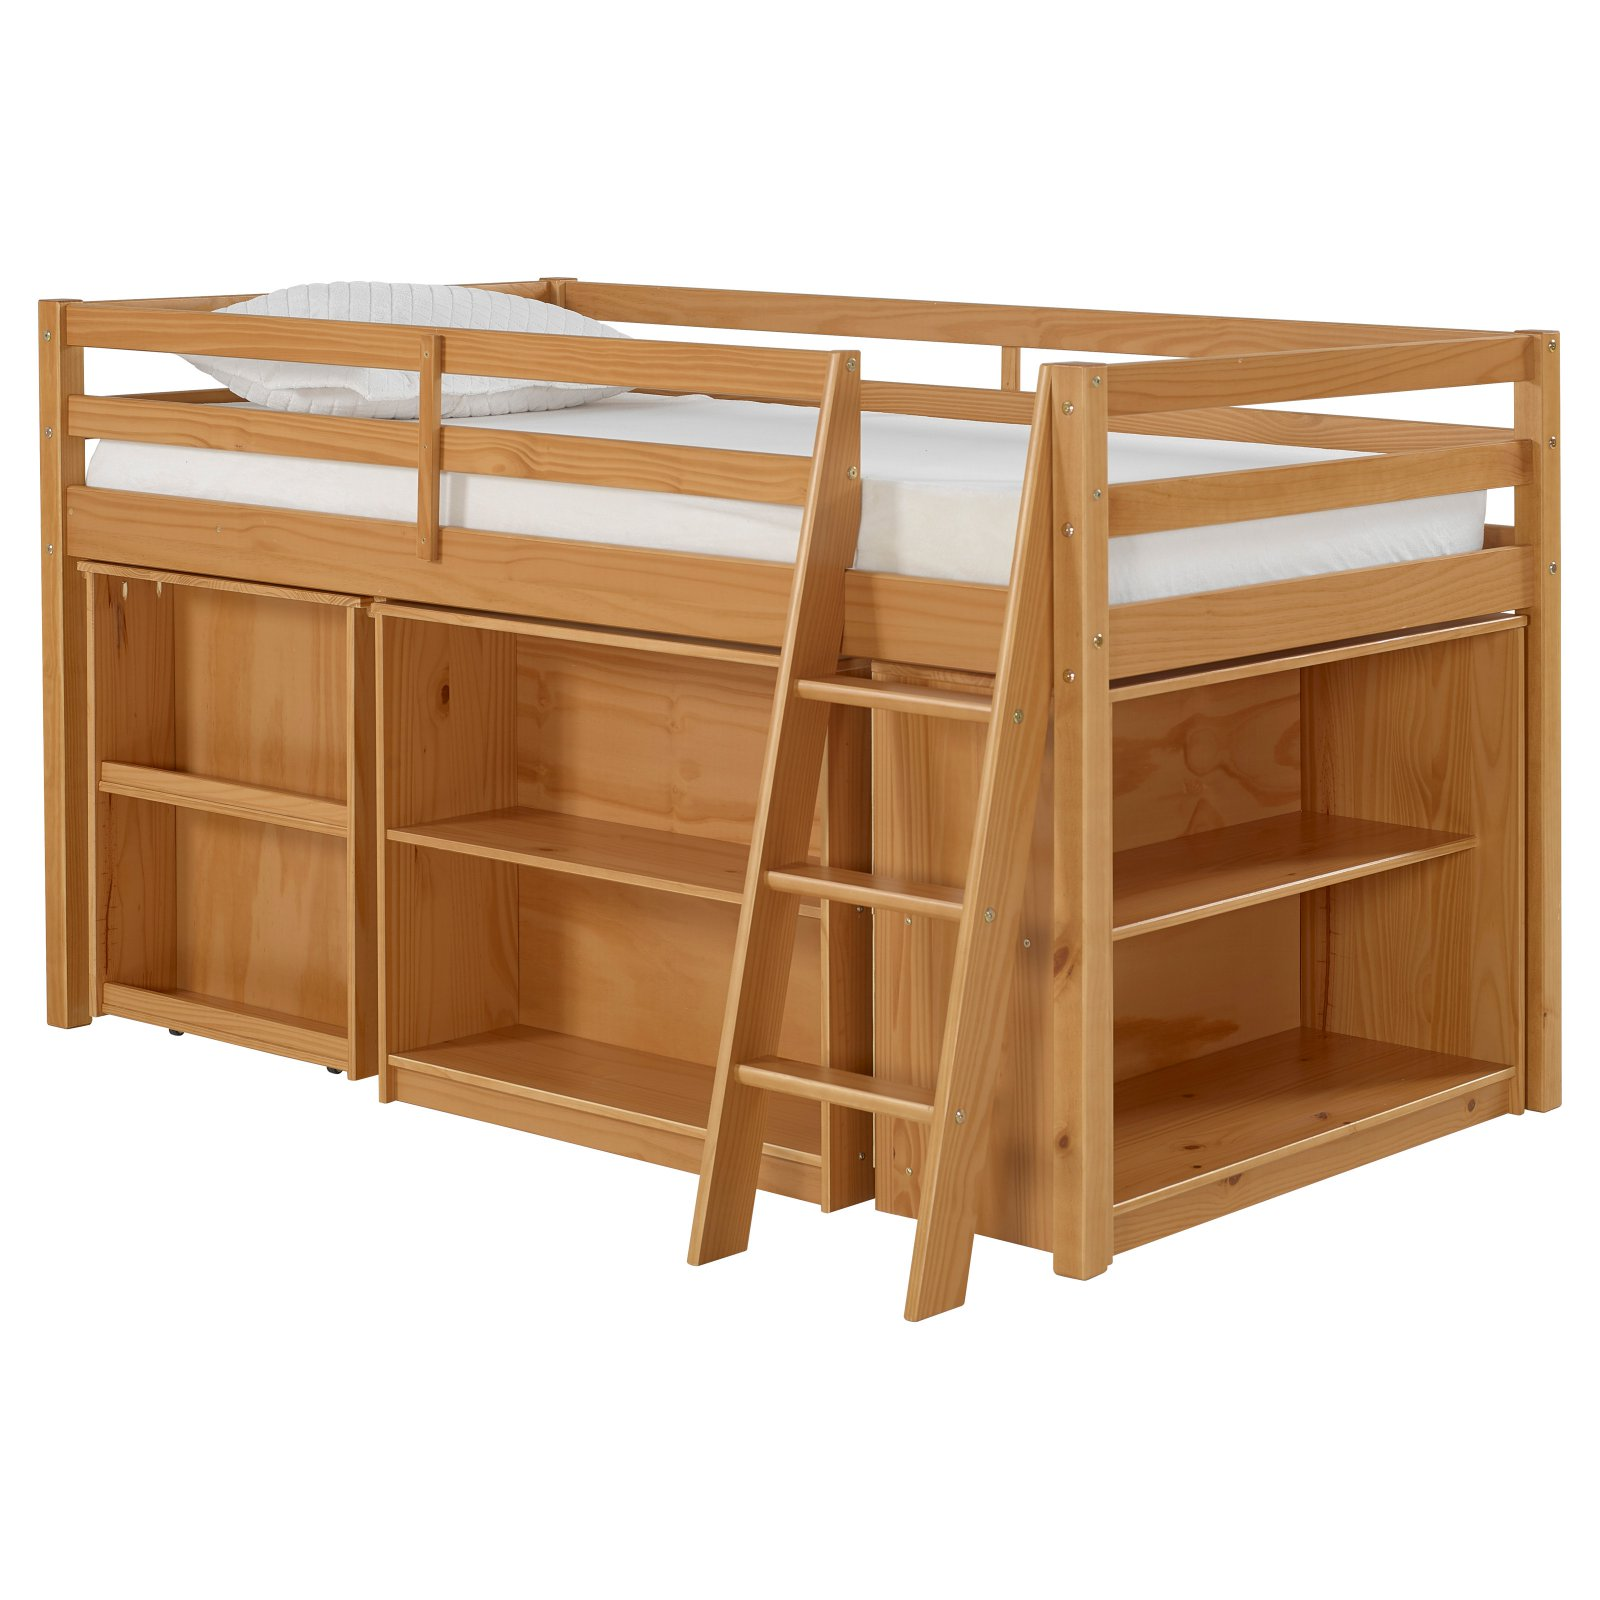 Roxy Junior Loft Bed with Storage Drawers, Bookshelf and Desk, Cinnamon